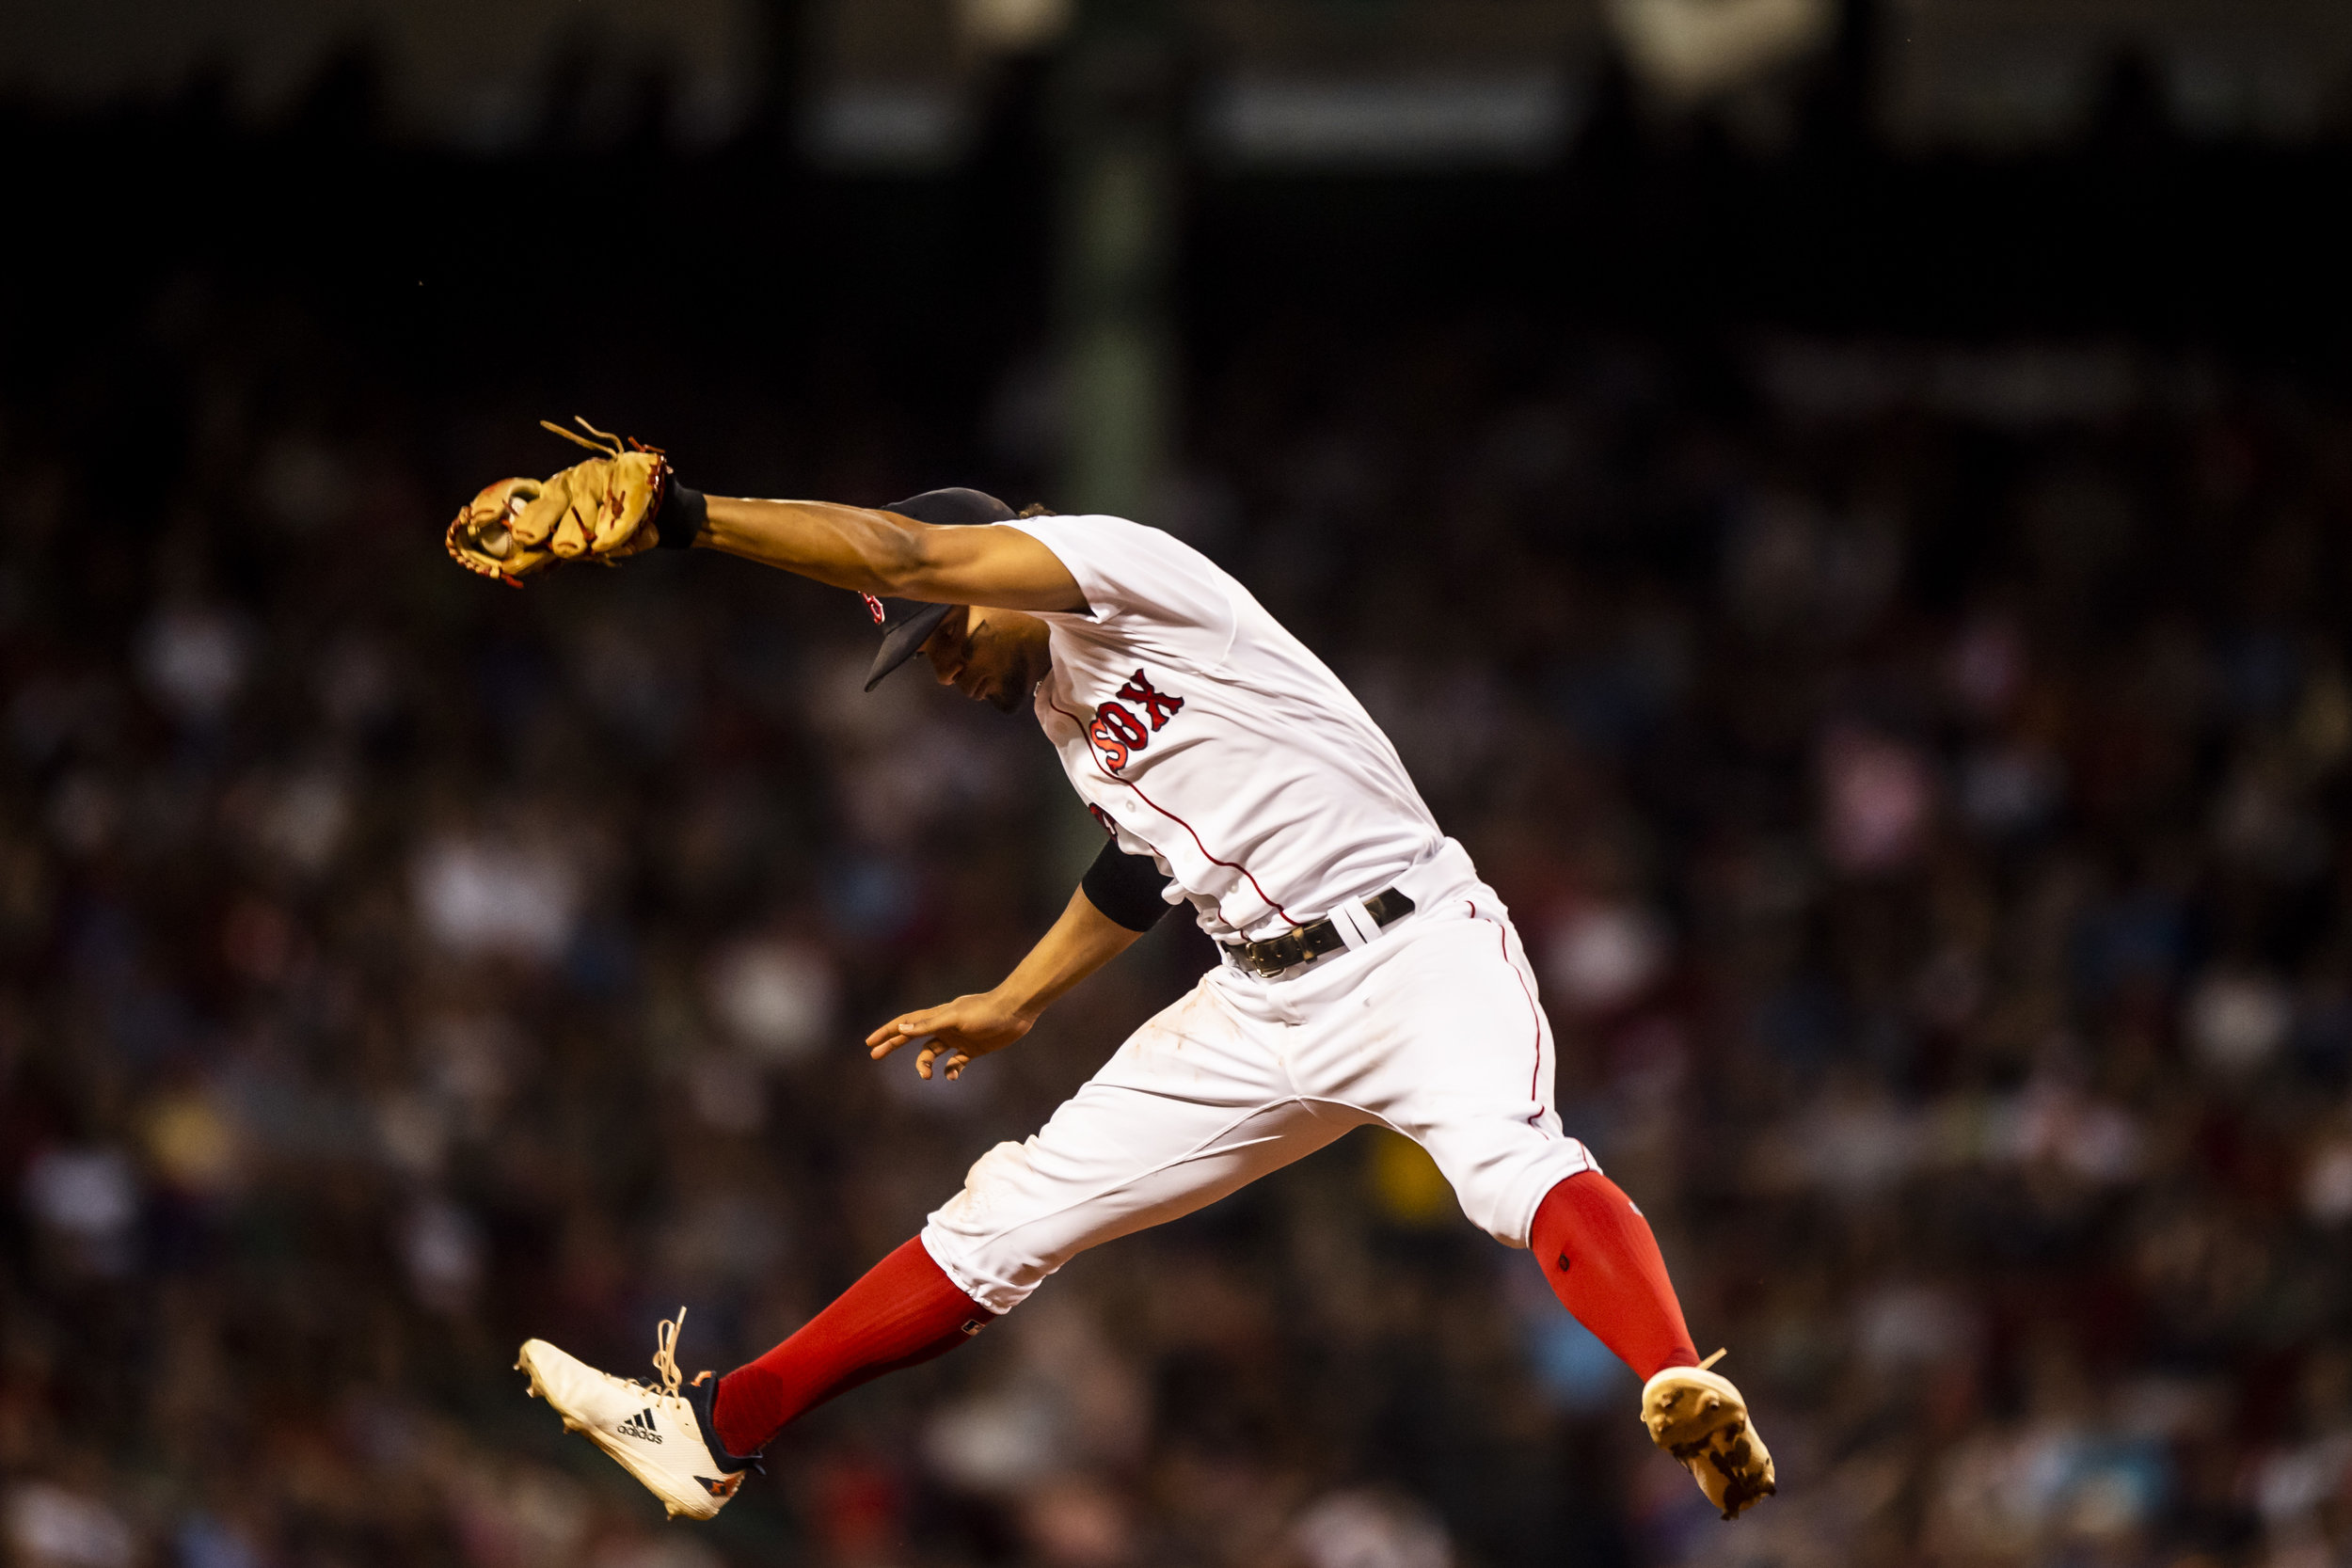 July 8, 2018, Boston, MA: Boston Red Sox shortstop Xander Bogaerts leaps into the air to make a catch as the Boston Red Sox face the Texas Rangers Fenway Park in Boston, Massachusetts on Monday, July 9, 2018. (Photo by Matthew Thomas/Boston Red Sox)